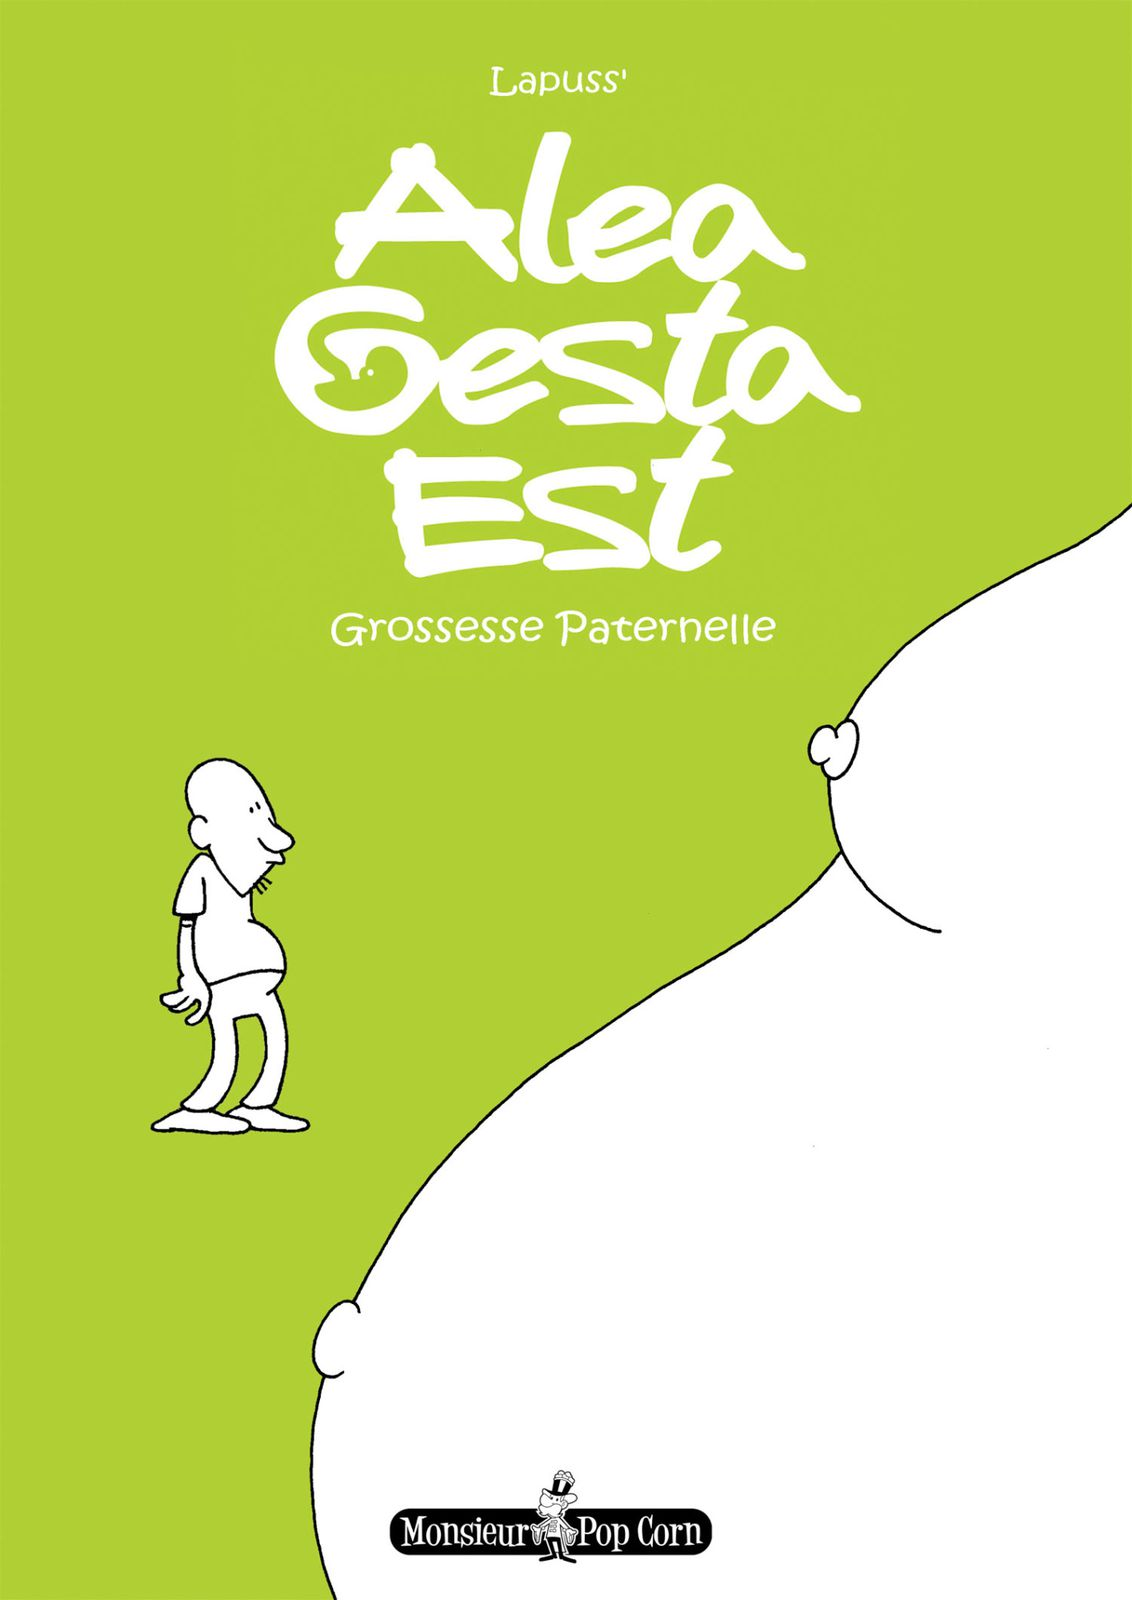 Couverture-Alea-Gesta-Est-Grossesse-Paternelle-Lapuss--Mons.jpg